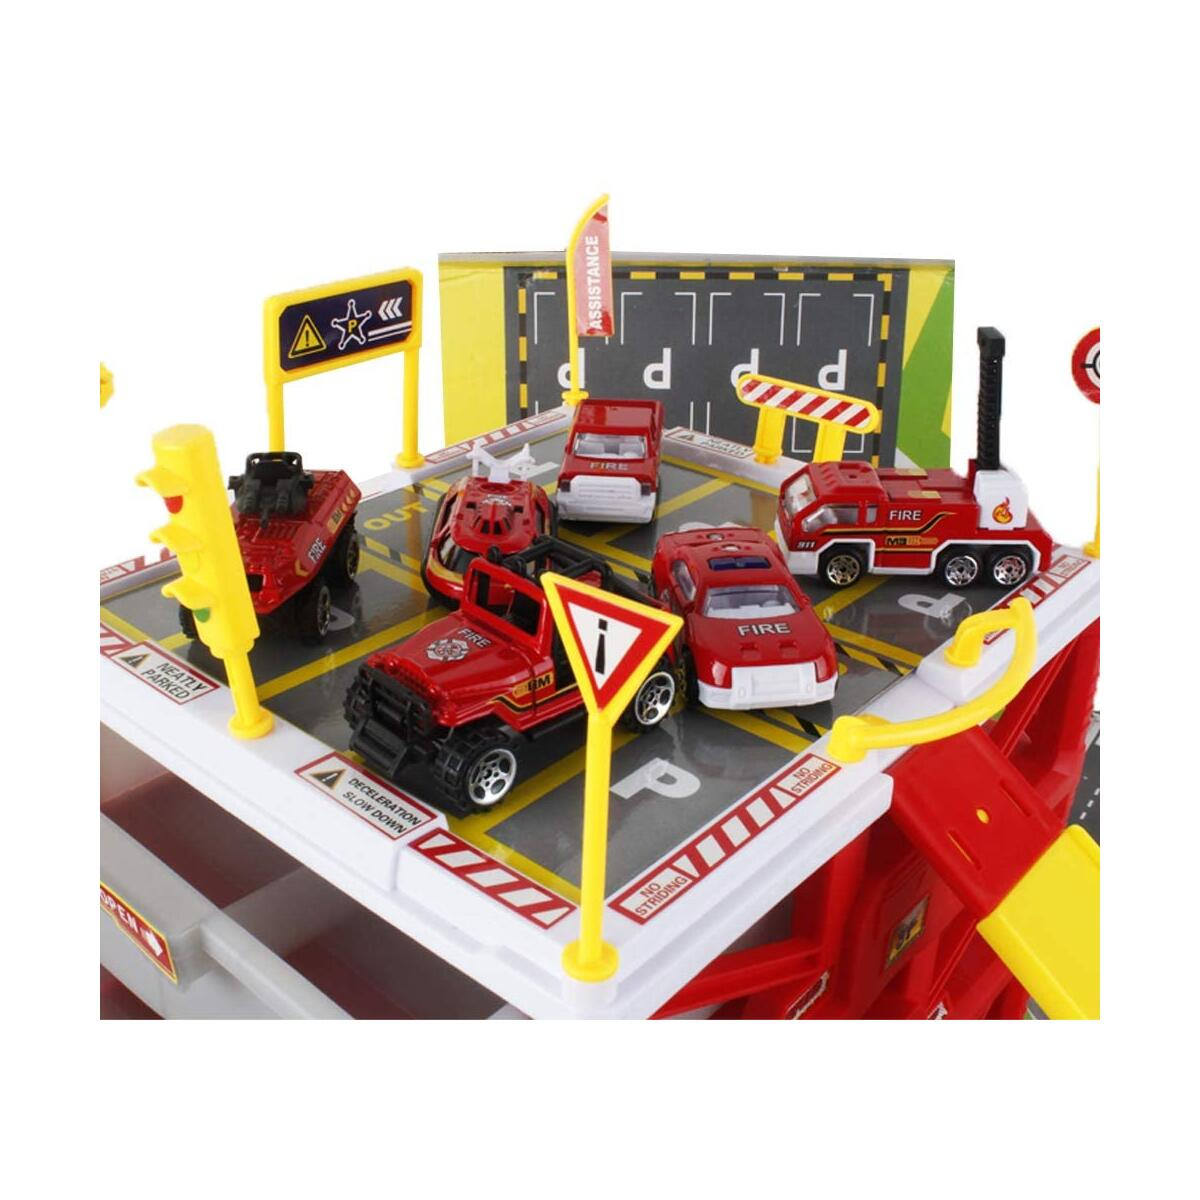 Happytime Parking Lot Car Garage Playset Vehicle Storage Box Play Construction Truck Toys Set Educational Gift with 6 Alloy Die-cast Cars, Ramps, Traffic Signs for Kid Toddlers